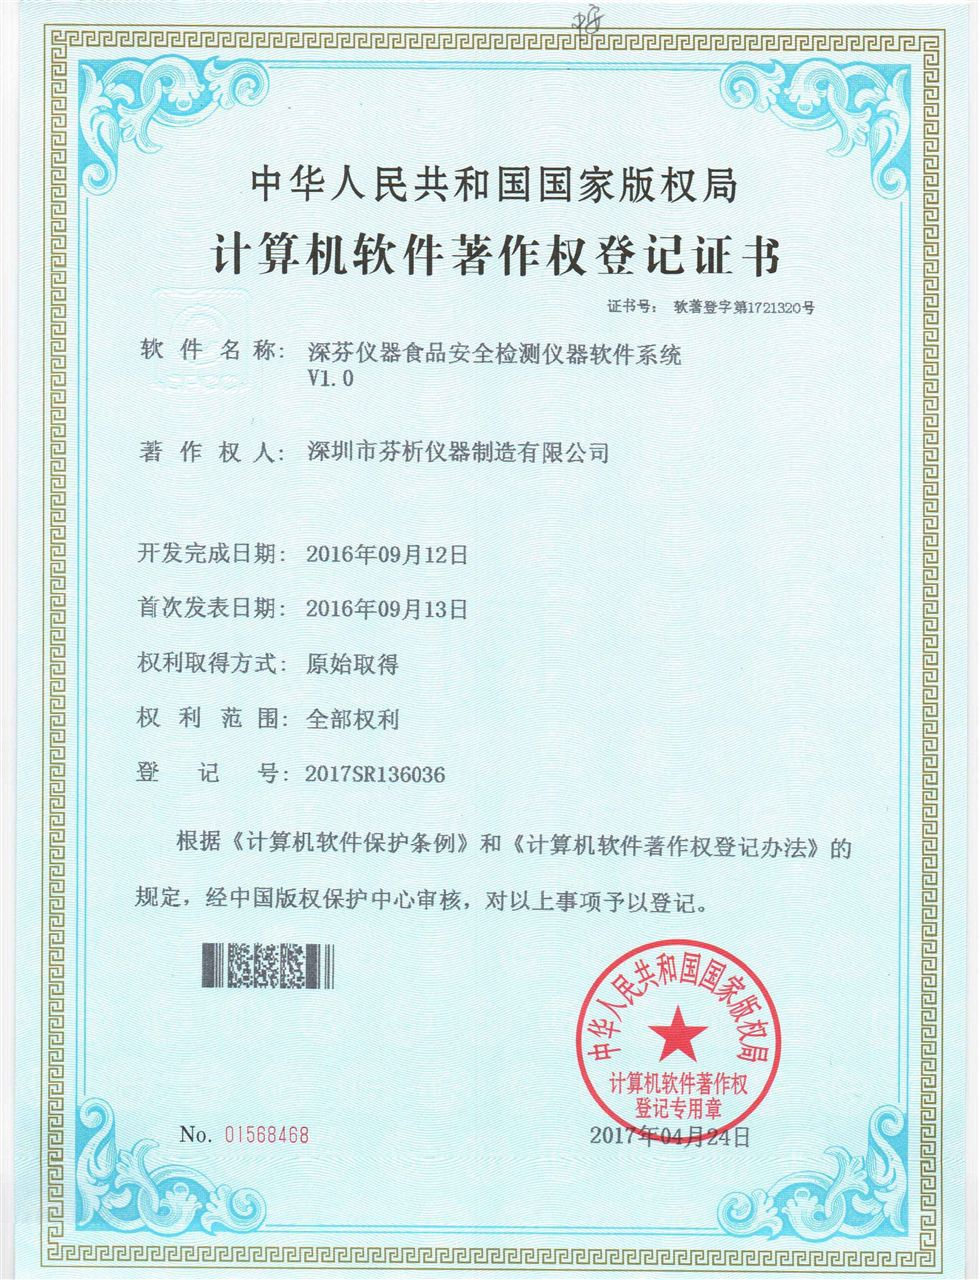 <strong><strong><strong><strong><strong><strong>吊白块检测仪</strong></strong></strong></strong></strong></strong>